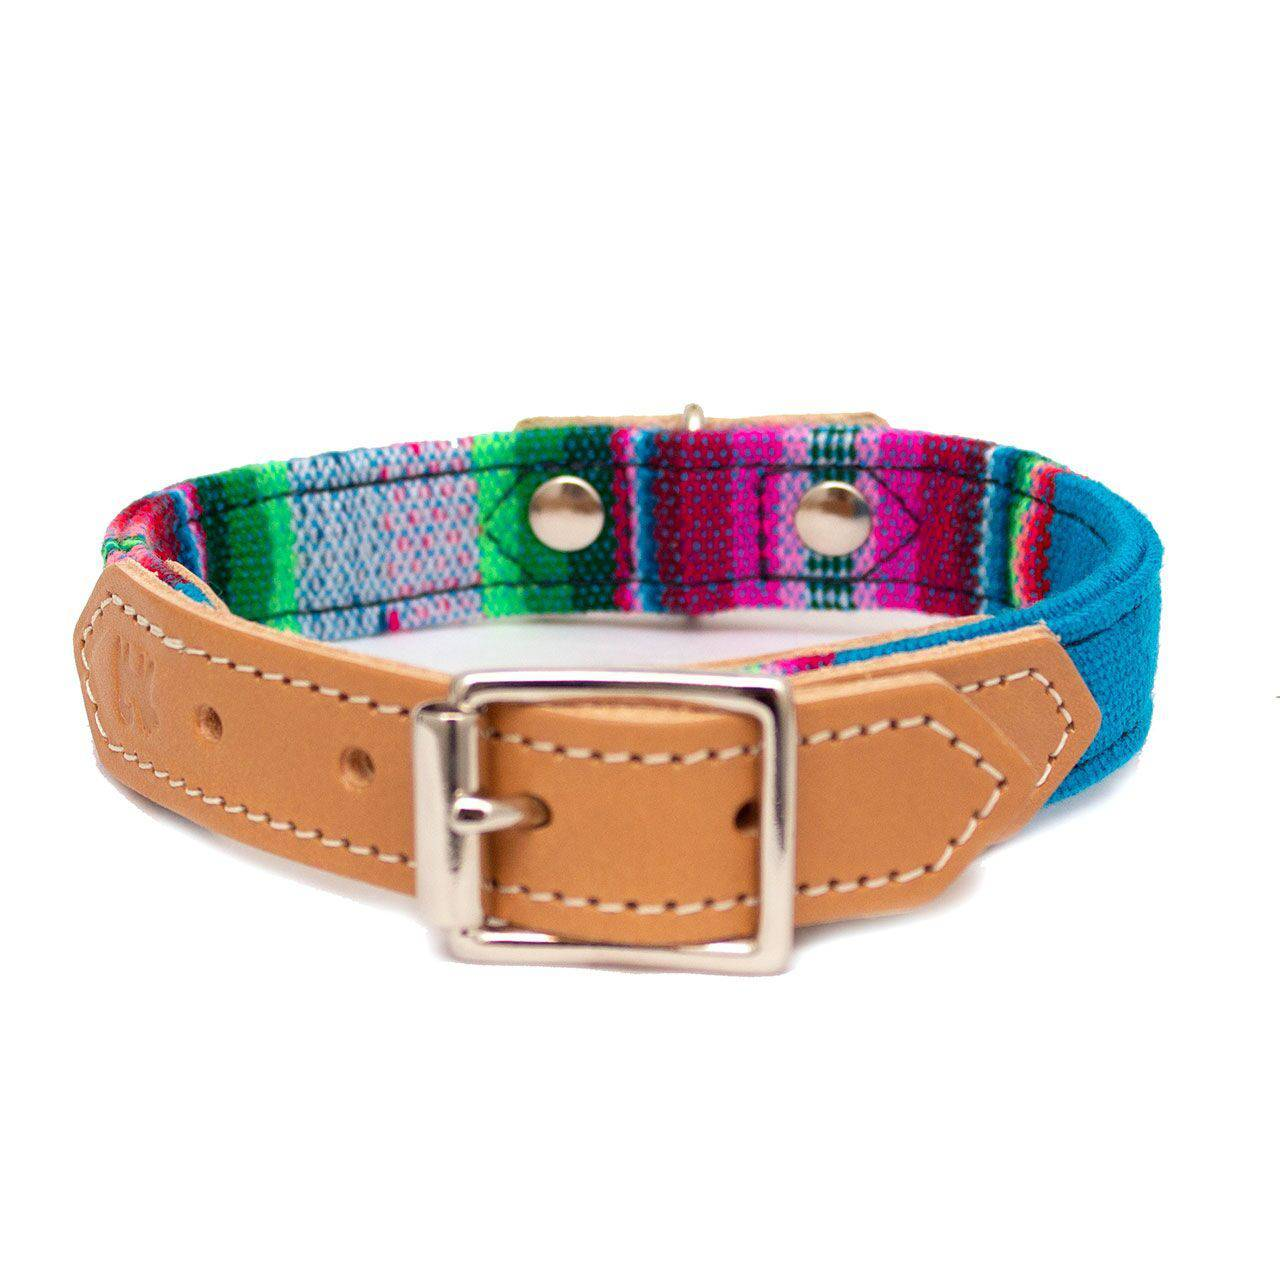 Inca Blue Dog Collar - Holler Brighton